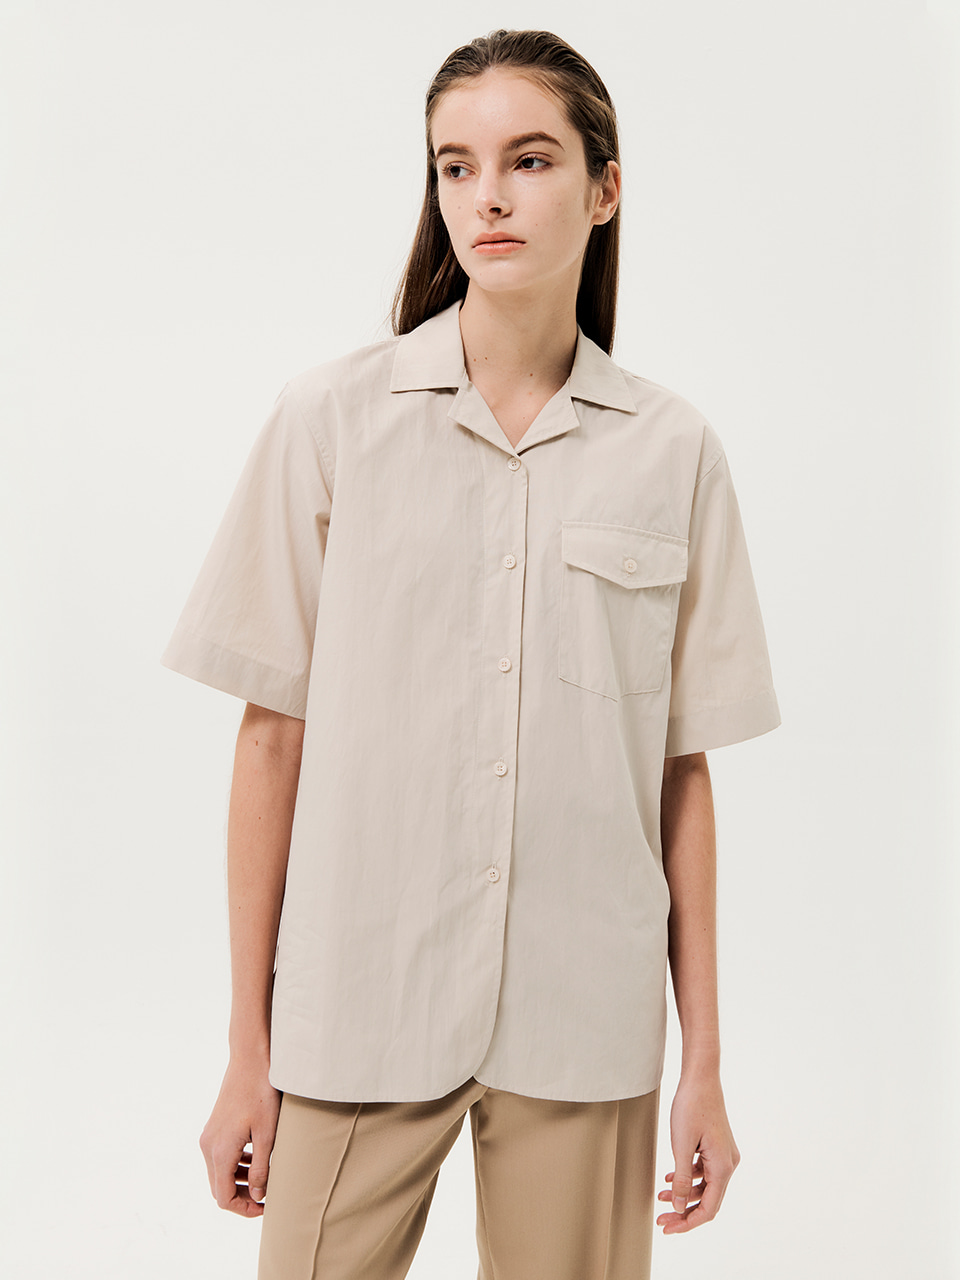 One Pocket Short Sleeve Shirts Light Beige